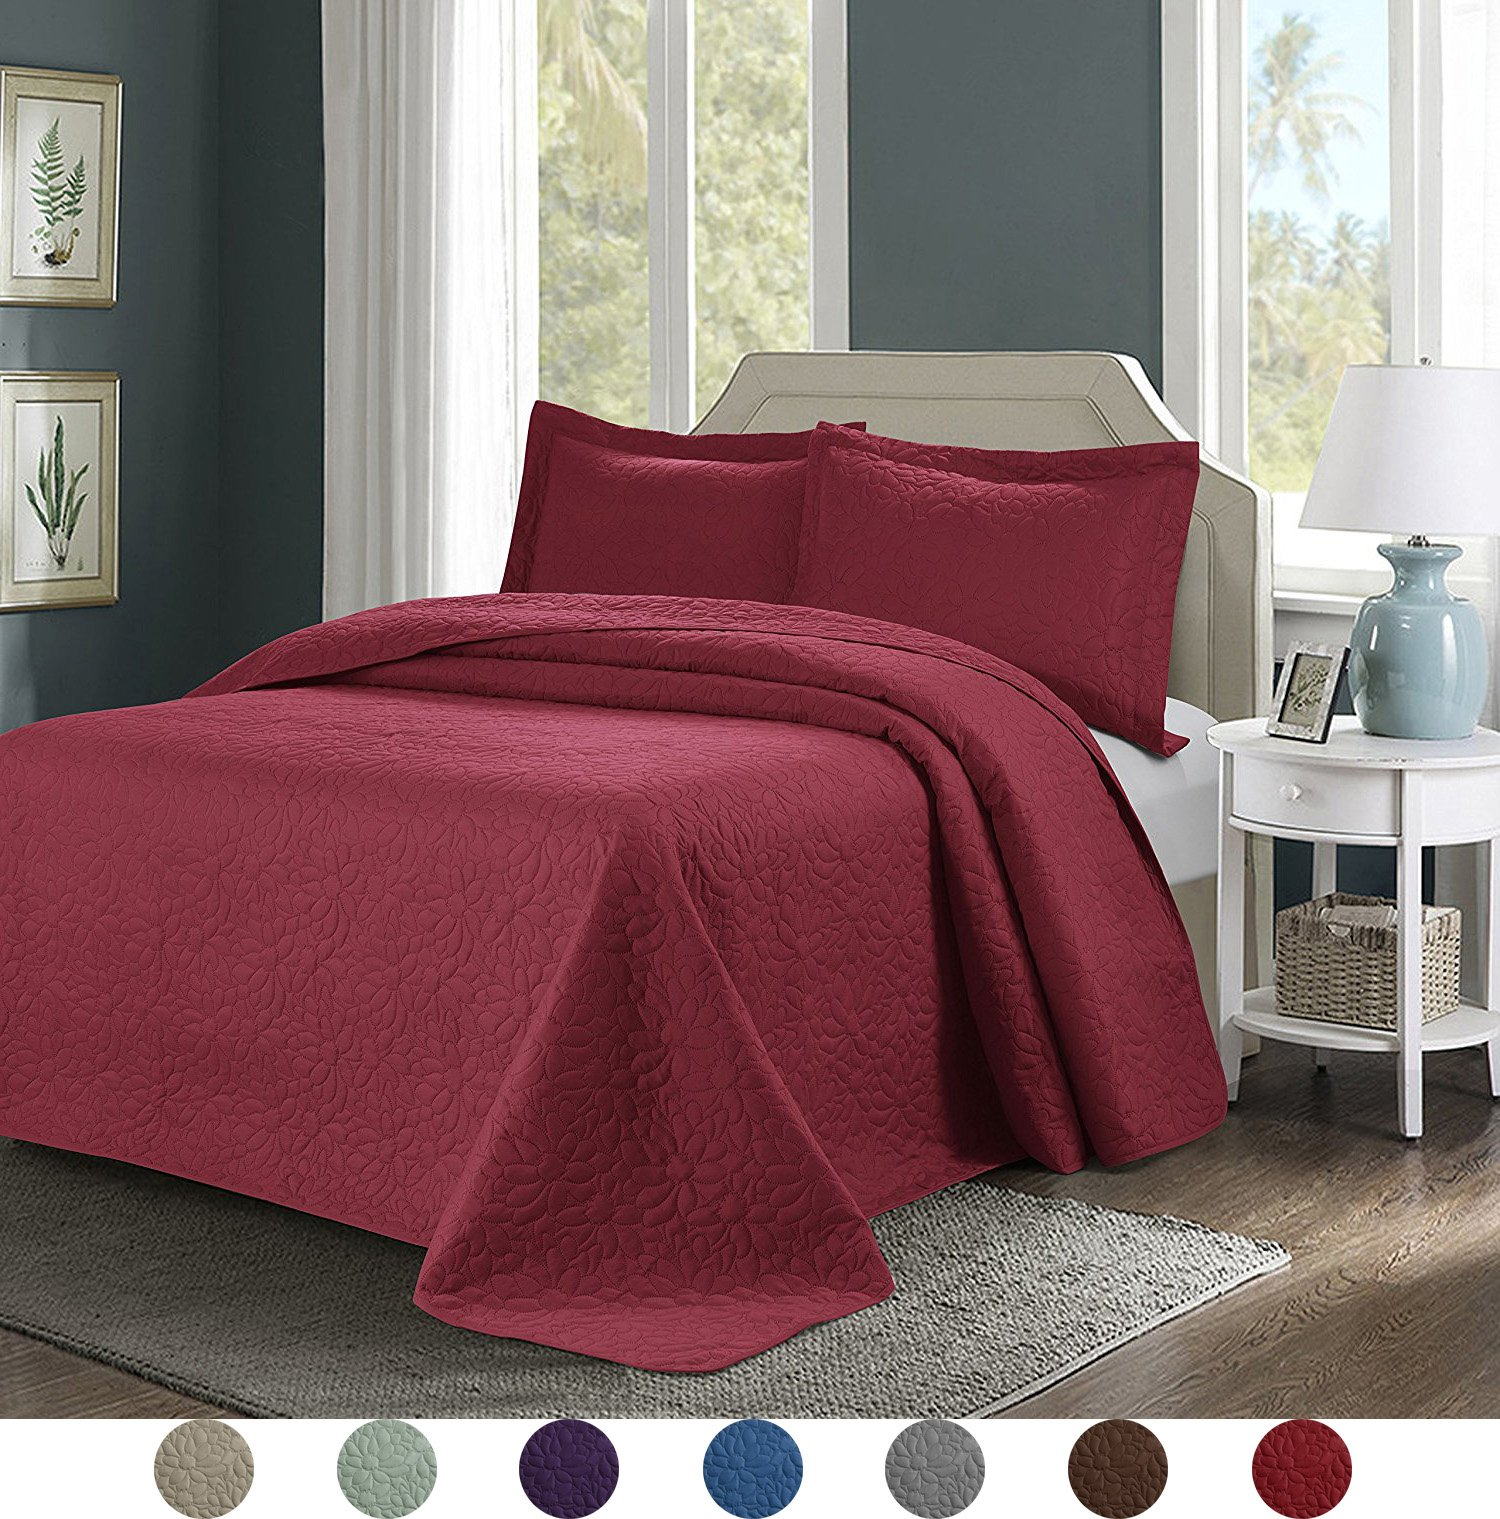 3 Piece Superior Comfy Embossed Bedspread Set,Oversized Ultrasonic Thermal Pressing Embossed Coverlet Set,Moderate Weight Bed Spread,TINOS(King,Burgundy) by GIH Bedspread Sets